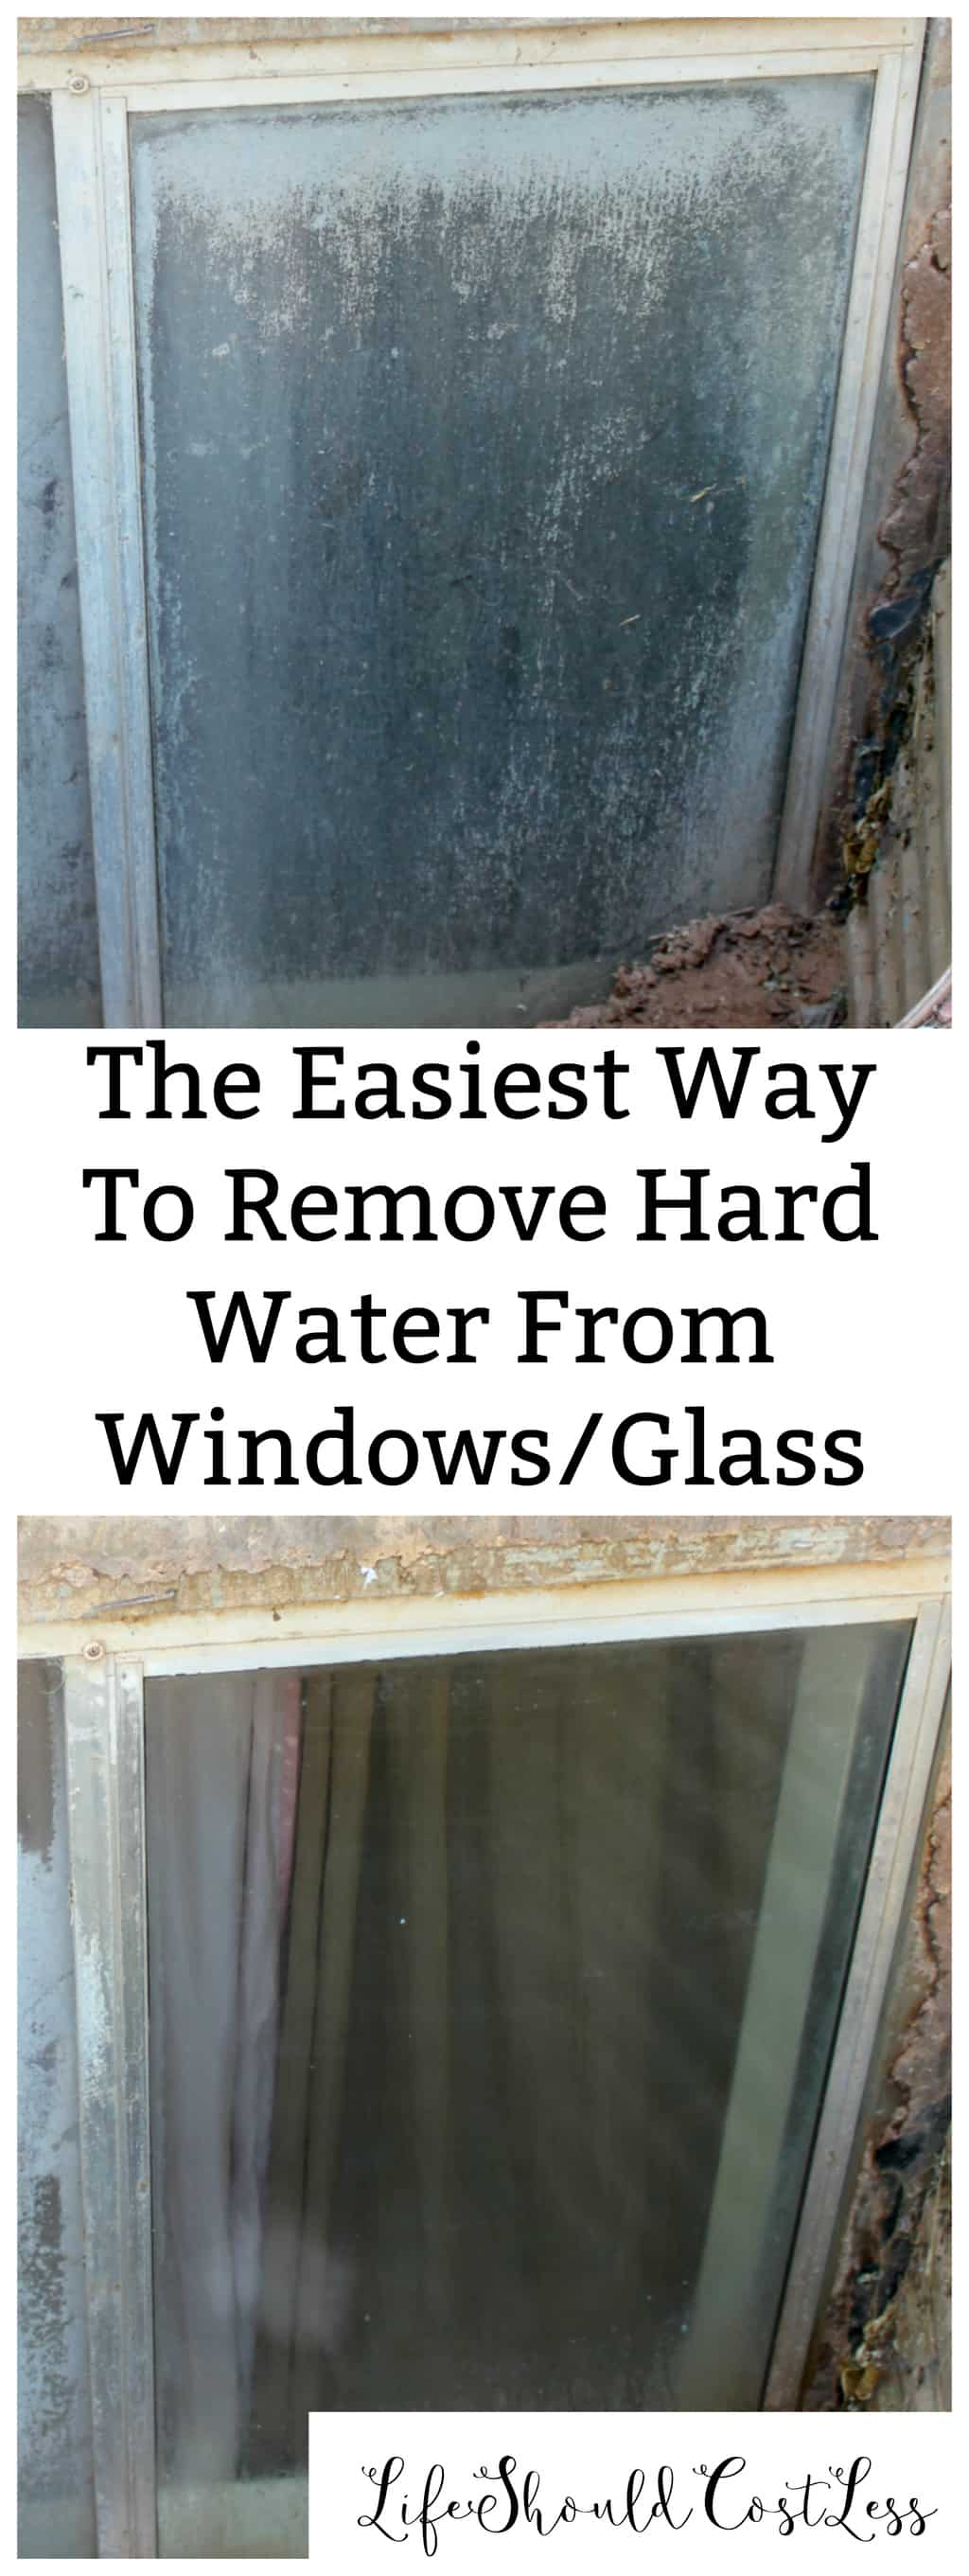 The Easiest Way To Clean Hard Water Off Of Windowsglass Life